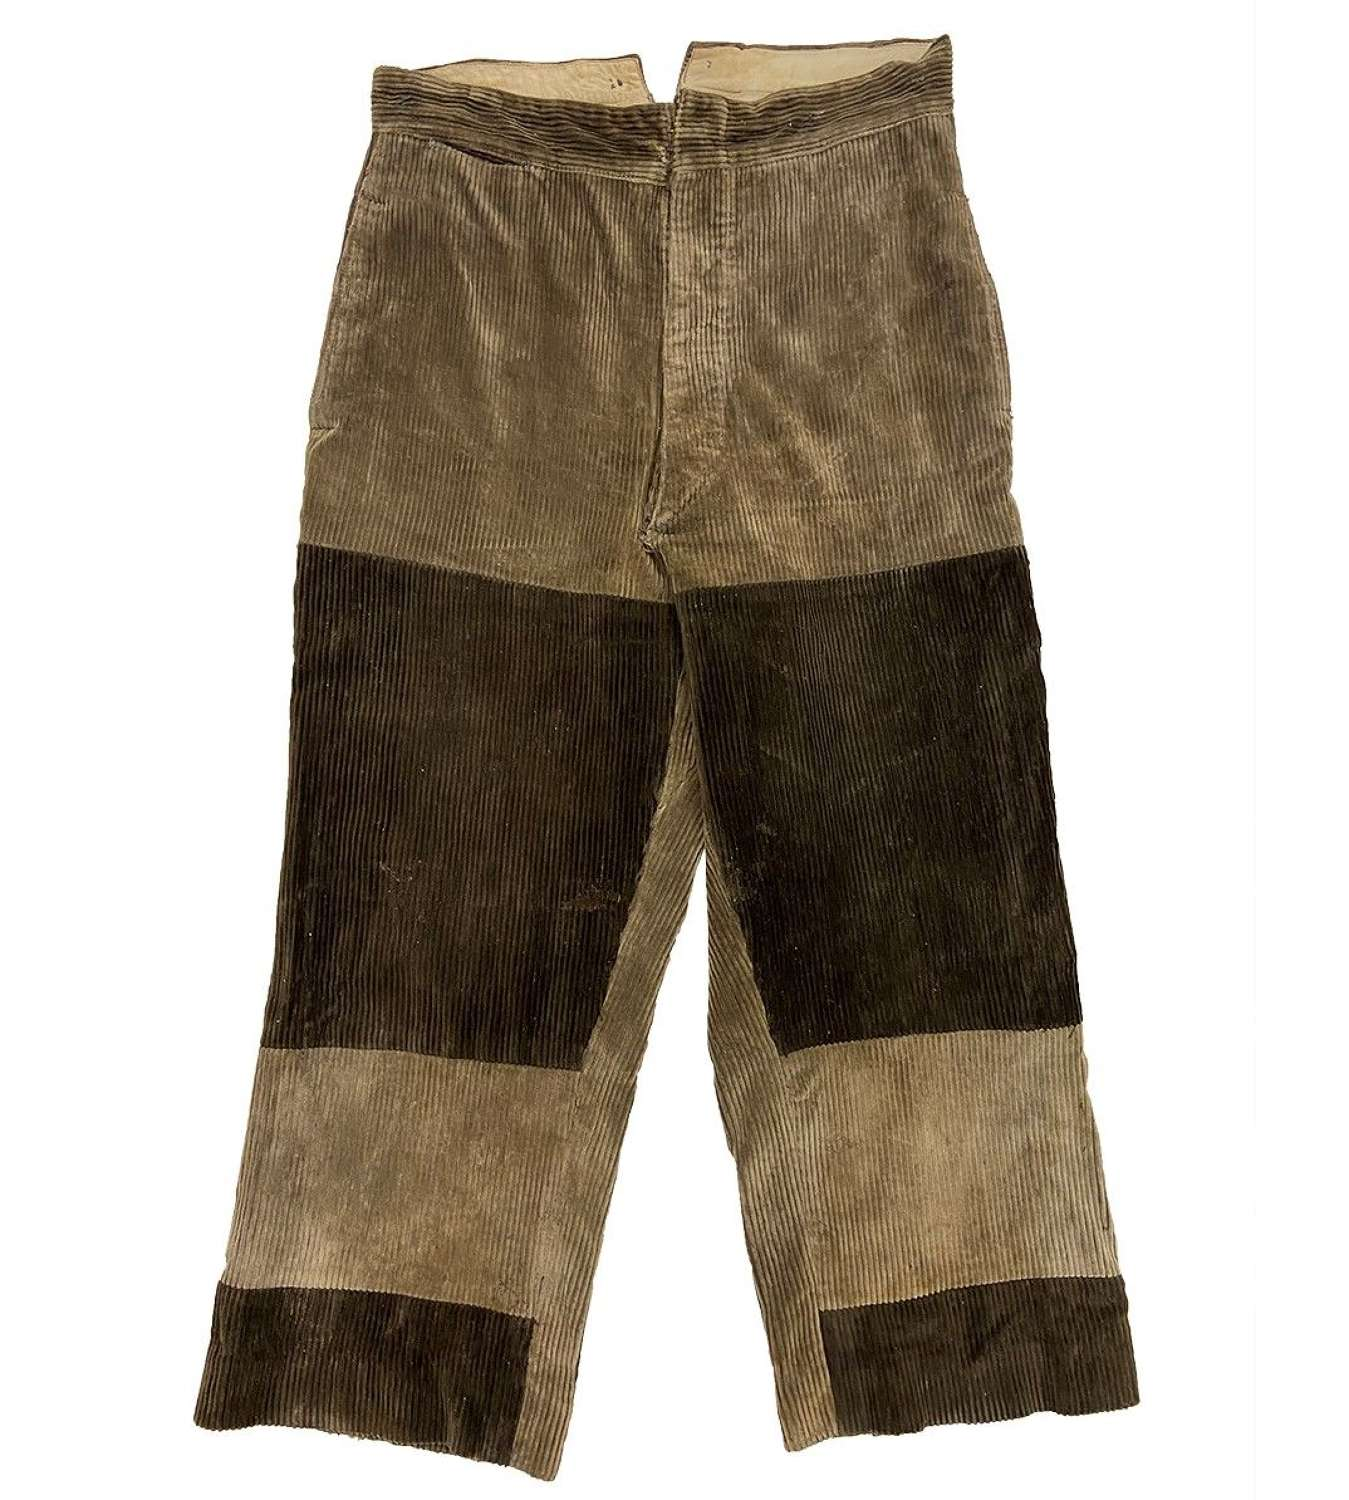 Original 1930s French Corduroy Workwear Trousers